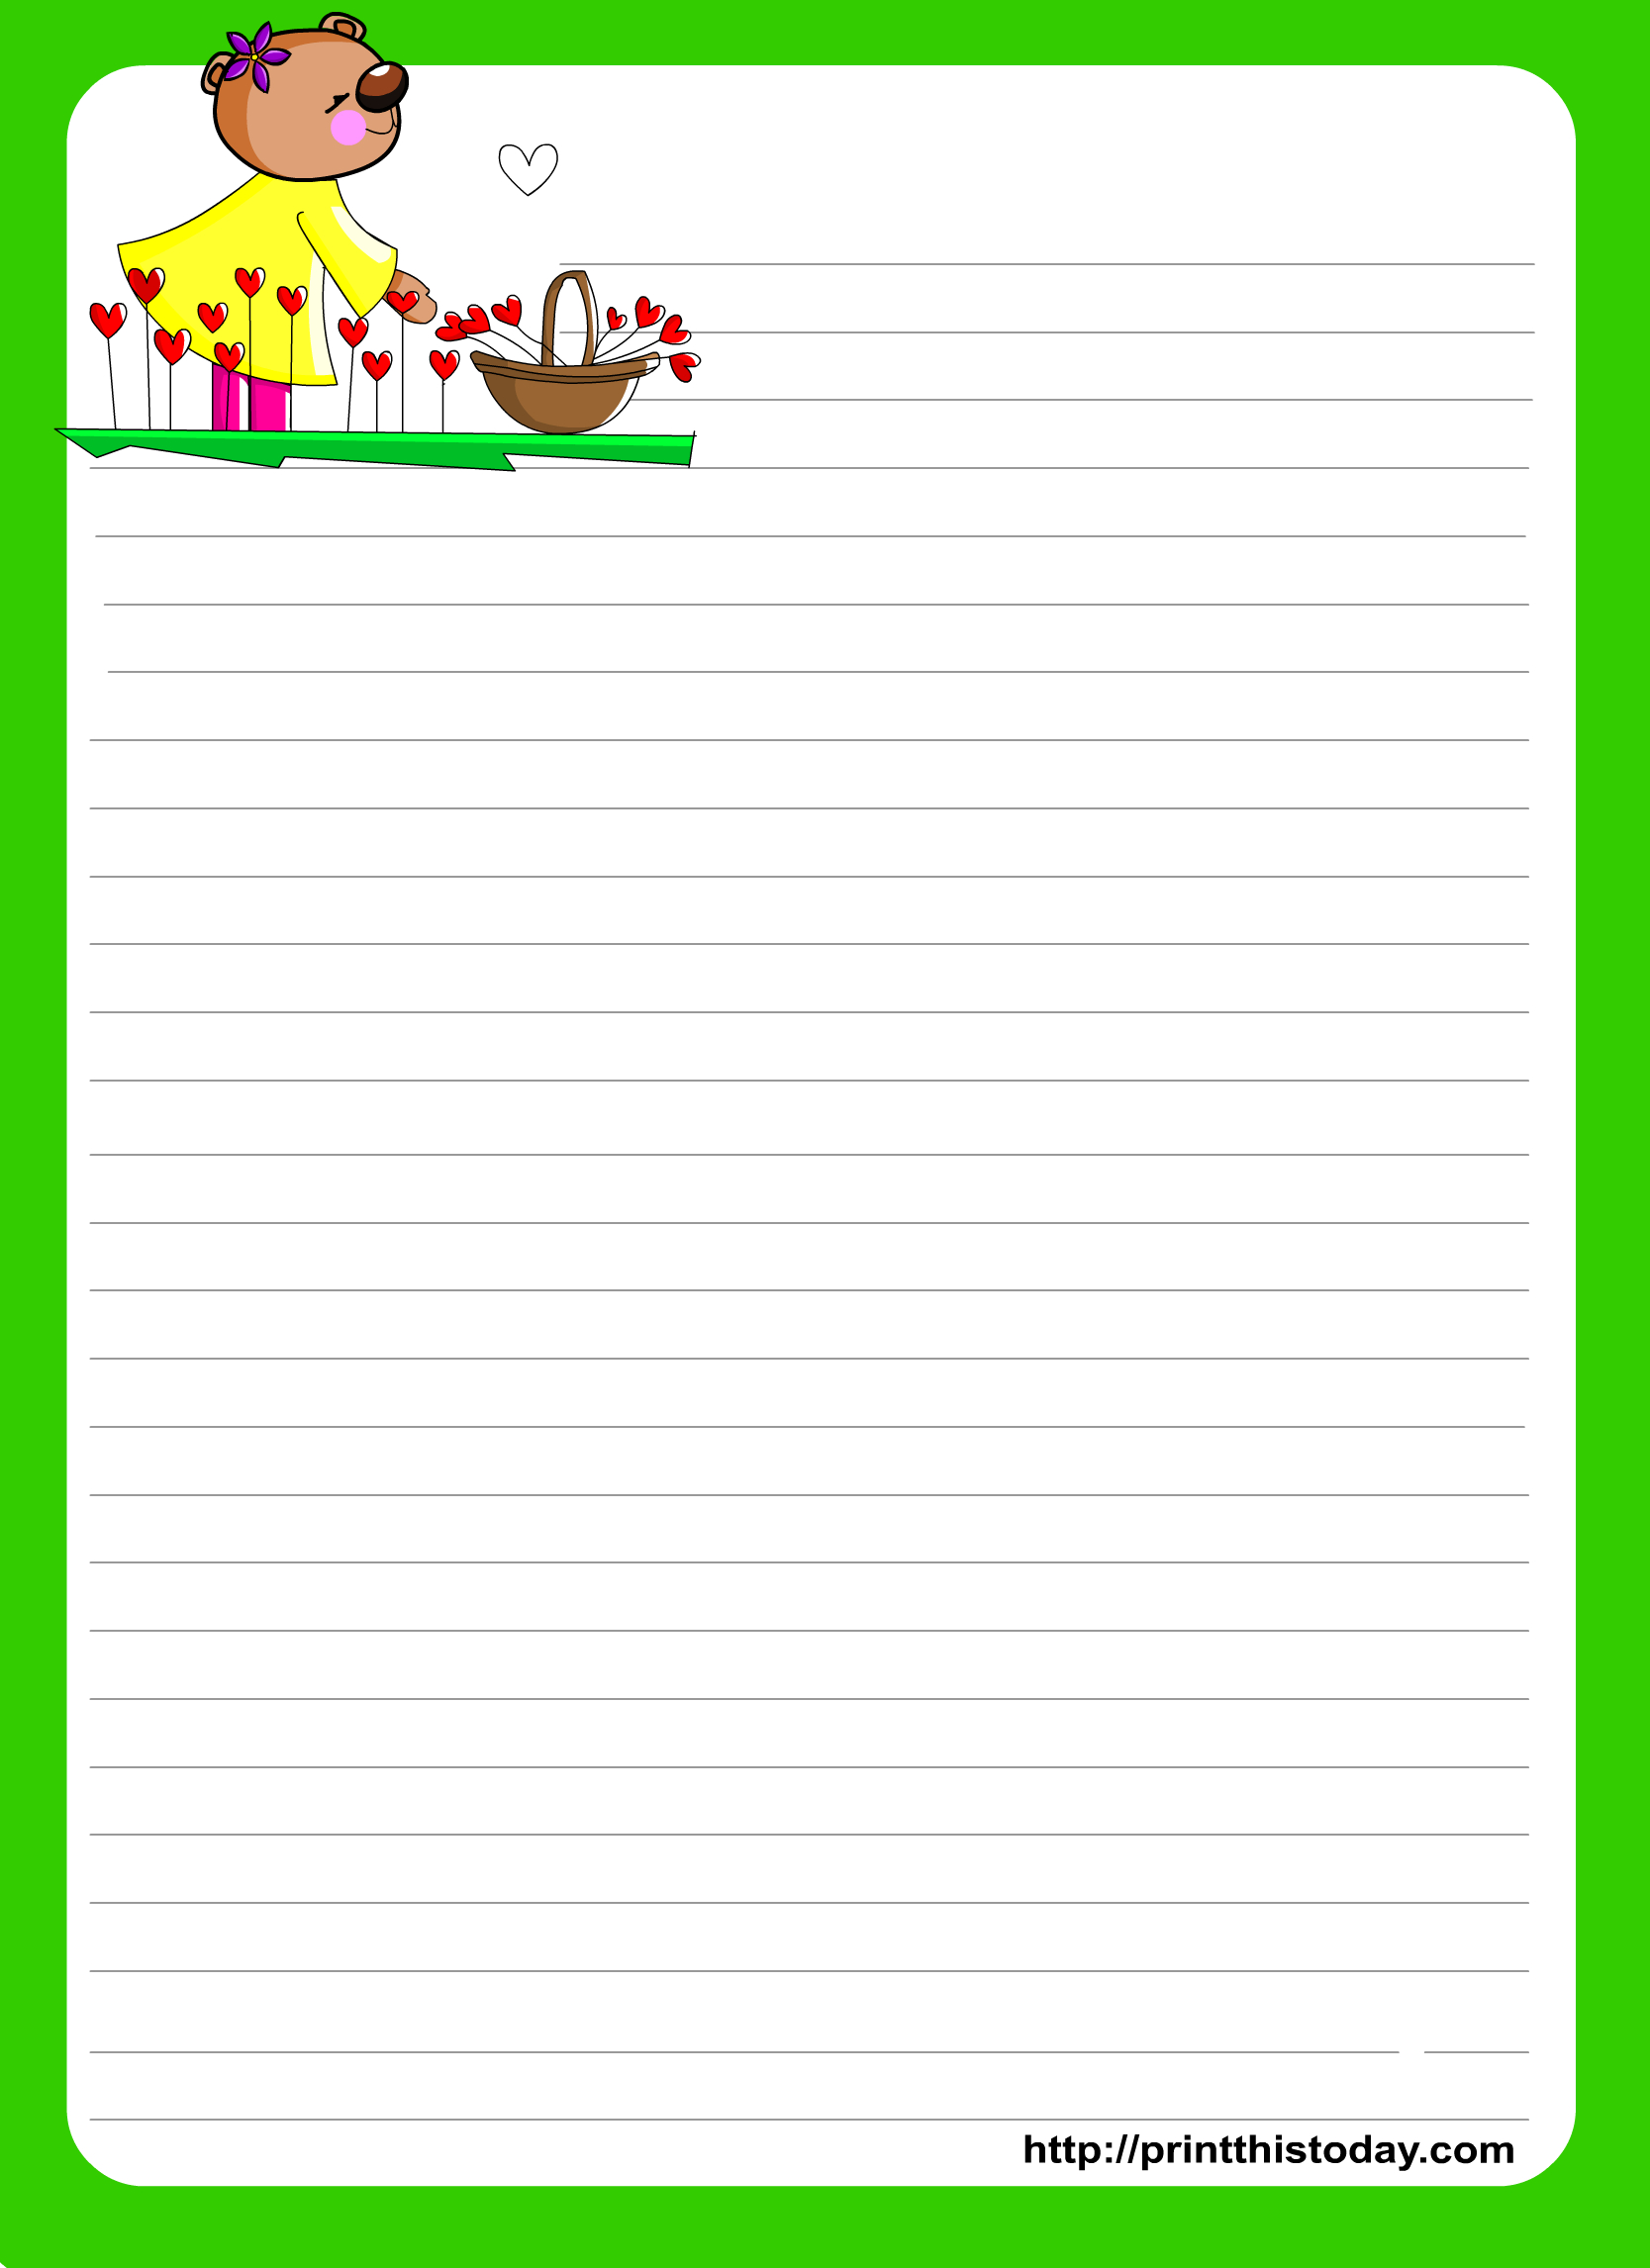 Love Letter Writing Paper - Free Printable Spring Stationery